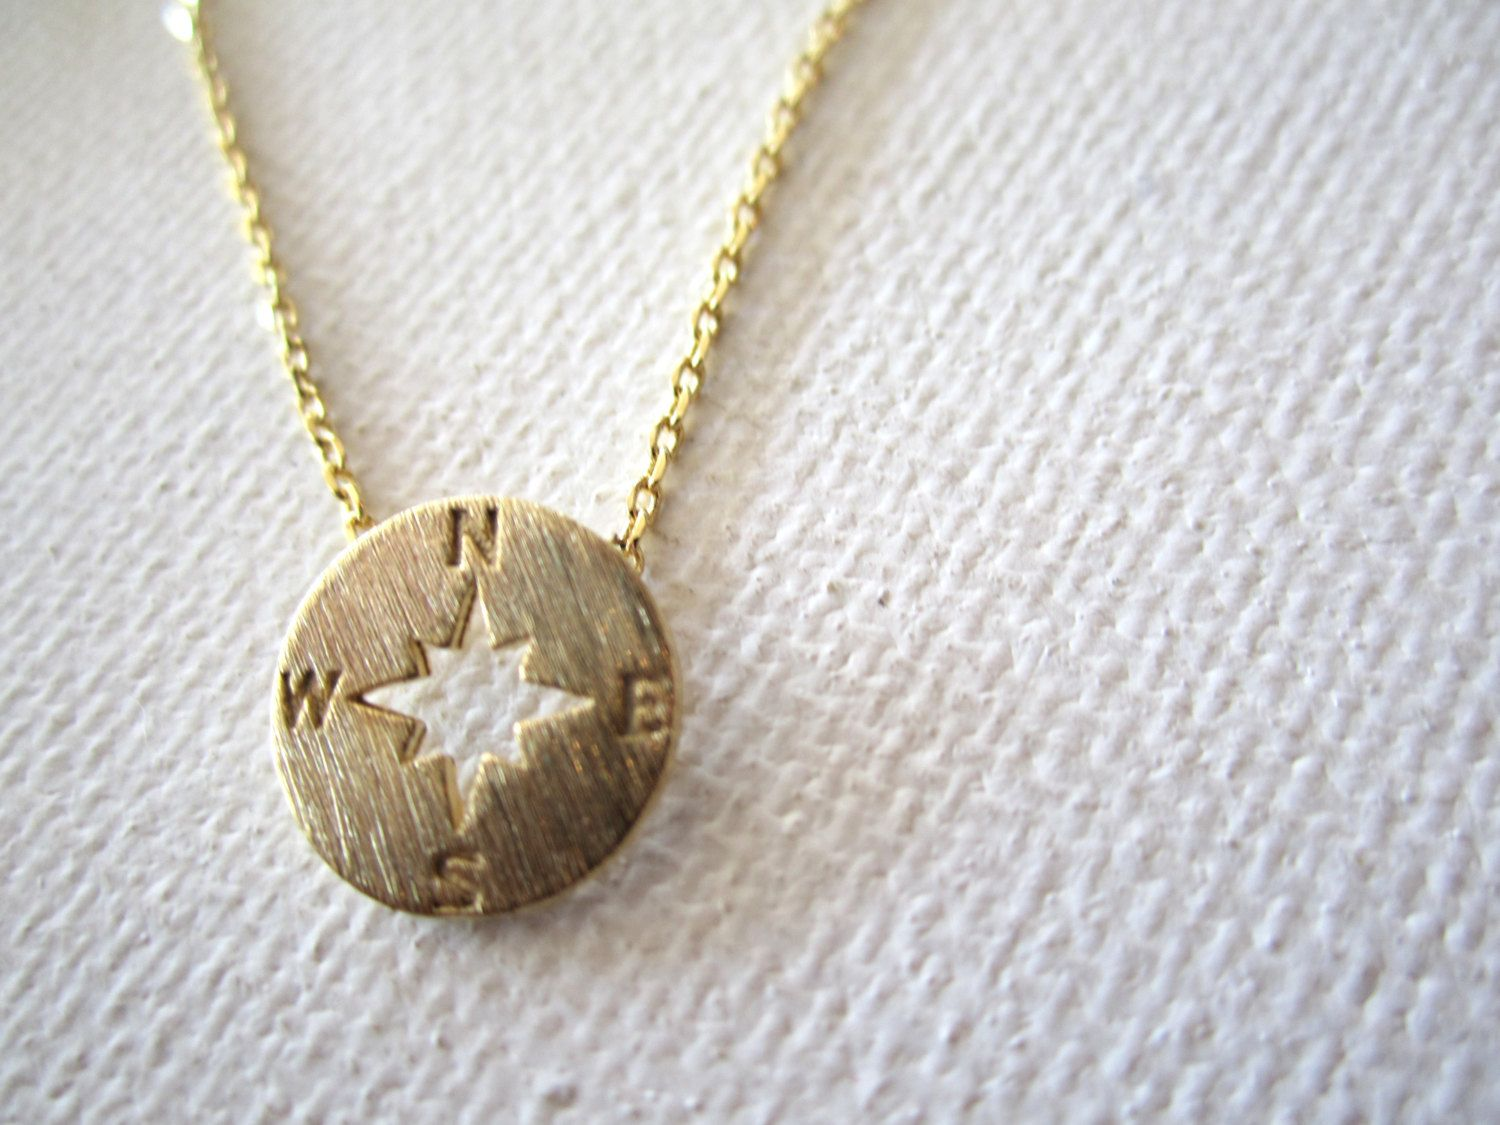 Tiny gold compass necklacesimple handmade jewelry everyday north